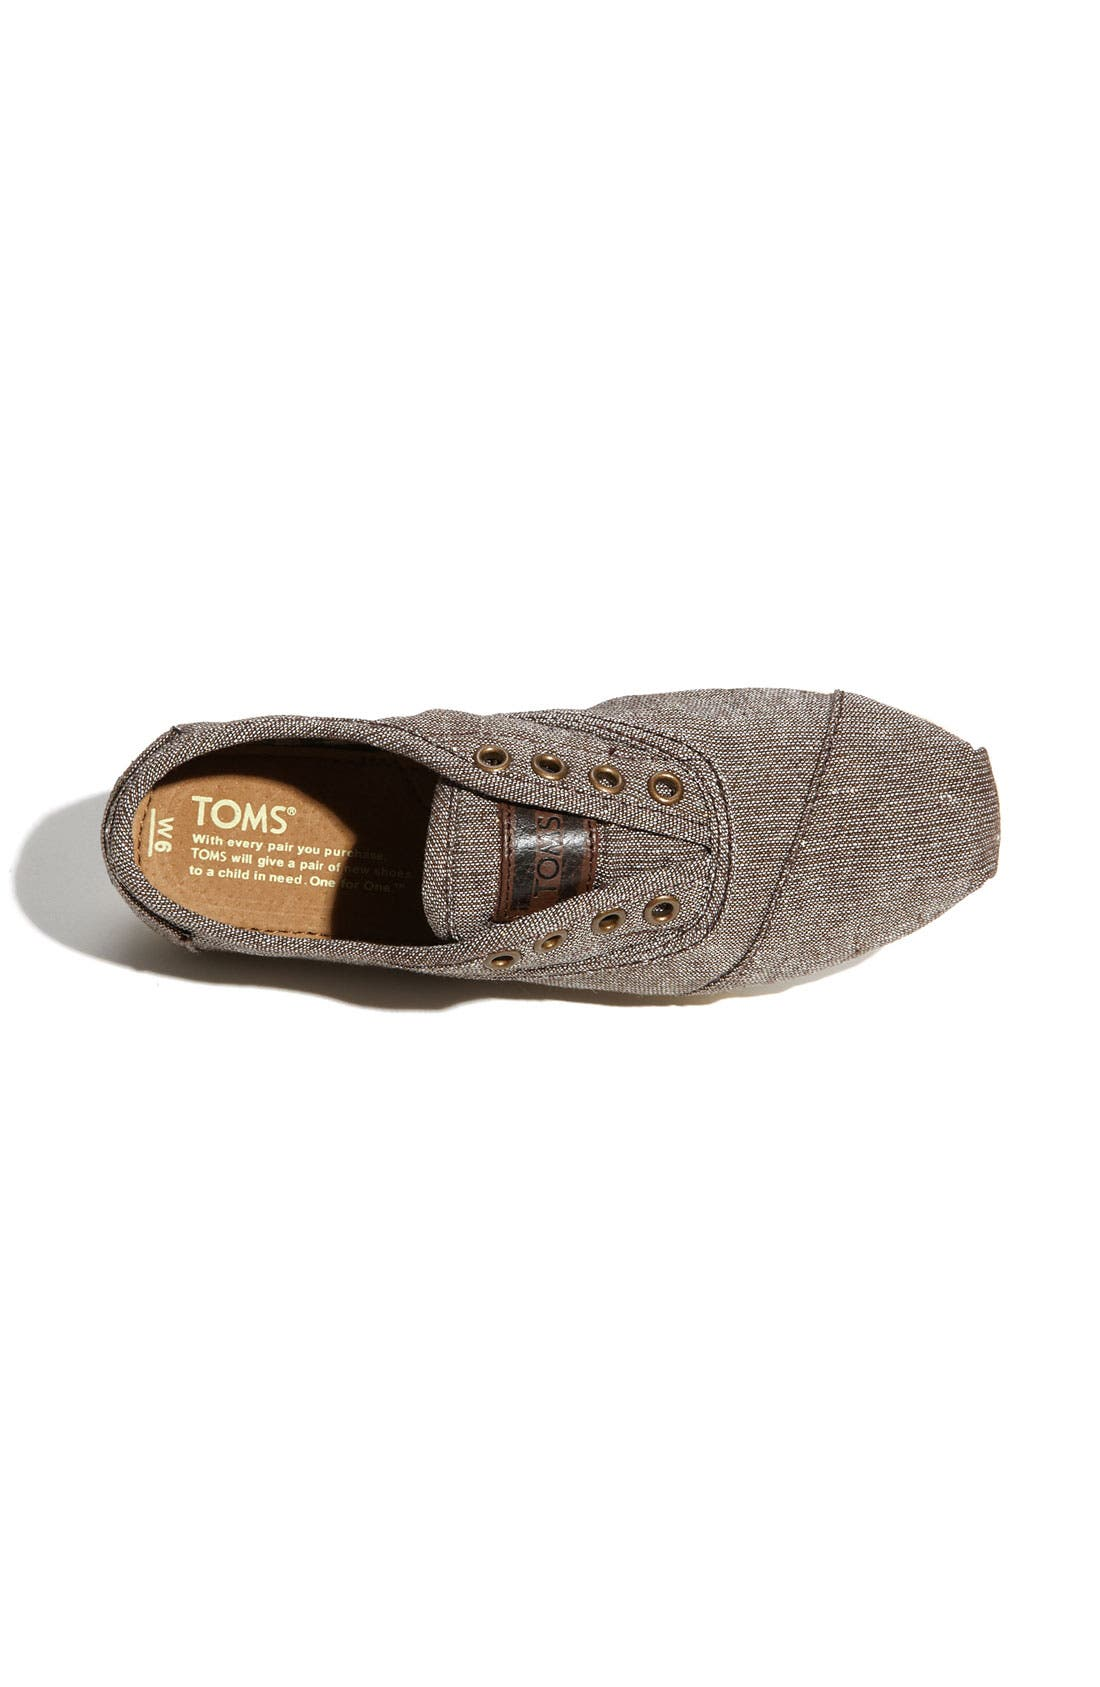 Alternate Image 3  - TOMS 'Cordones' Metallic Slip-On (Women)